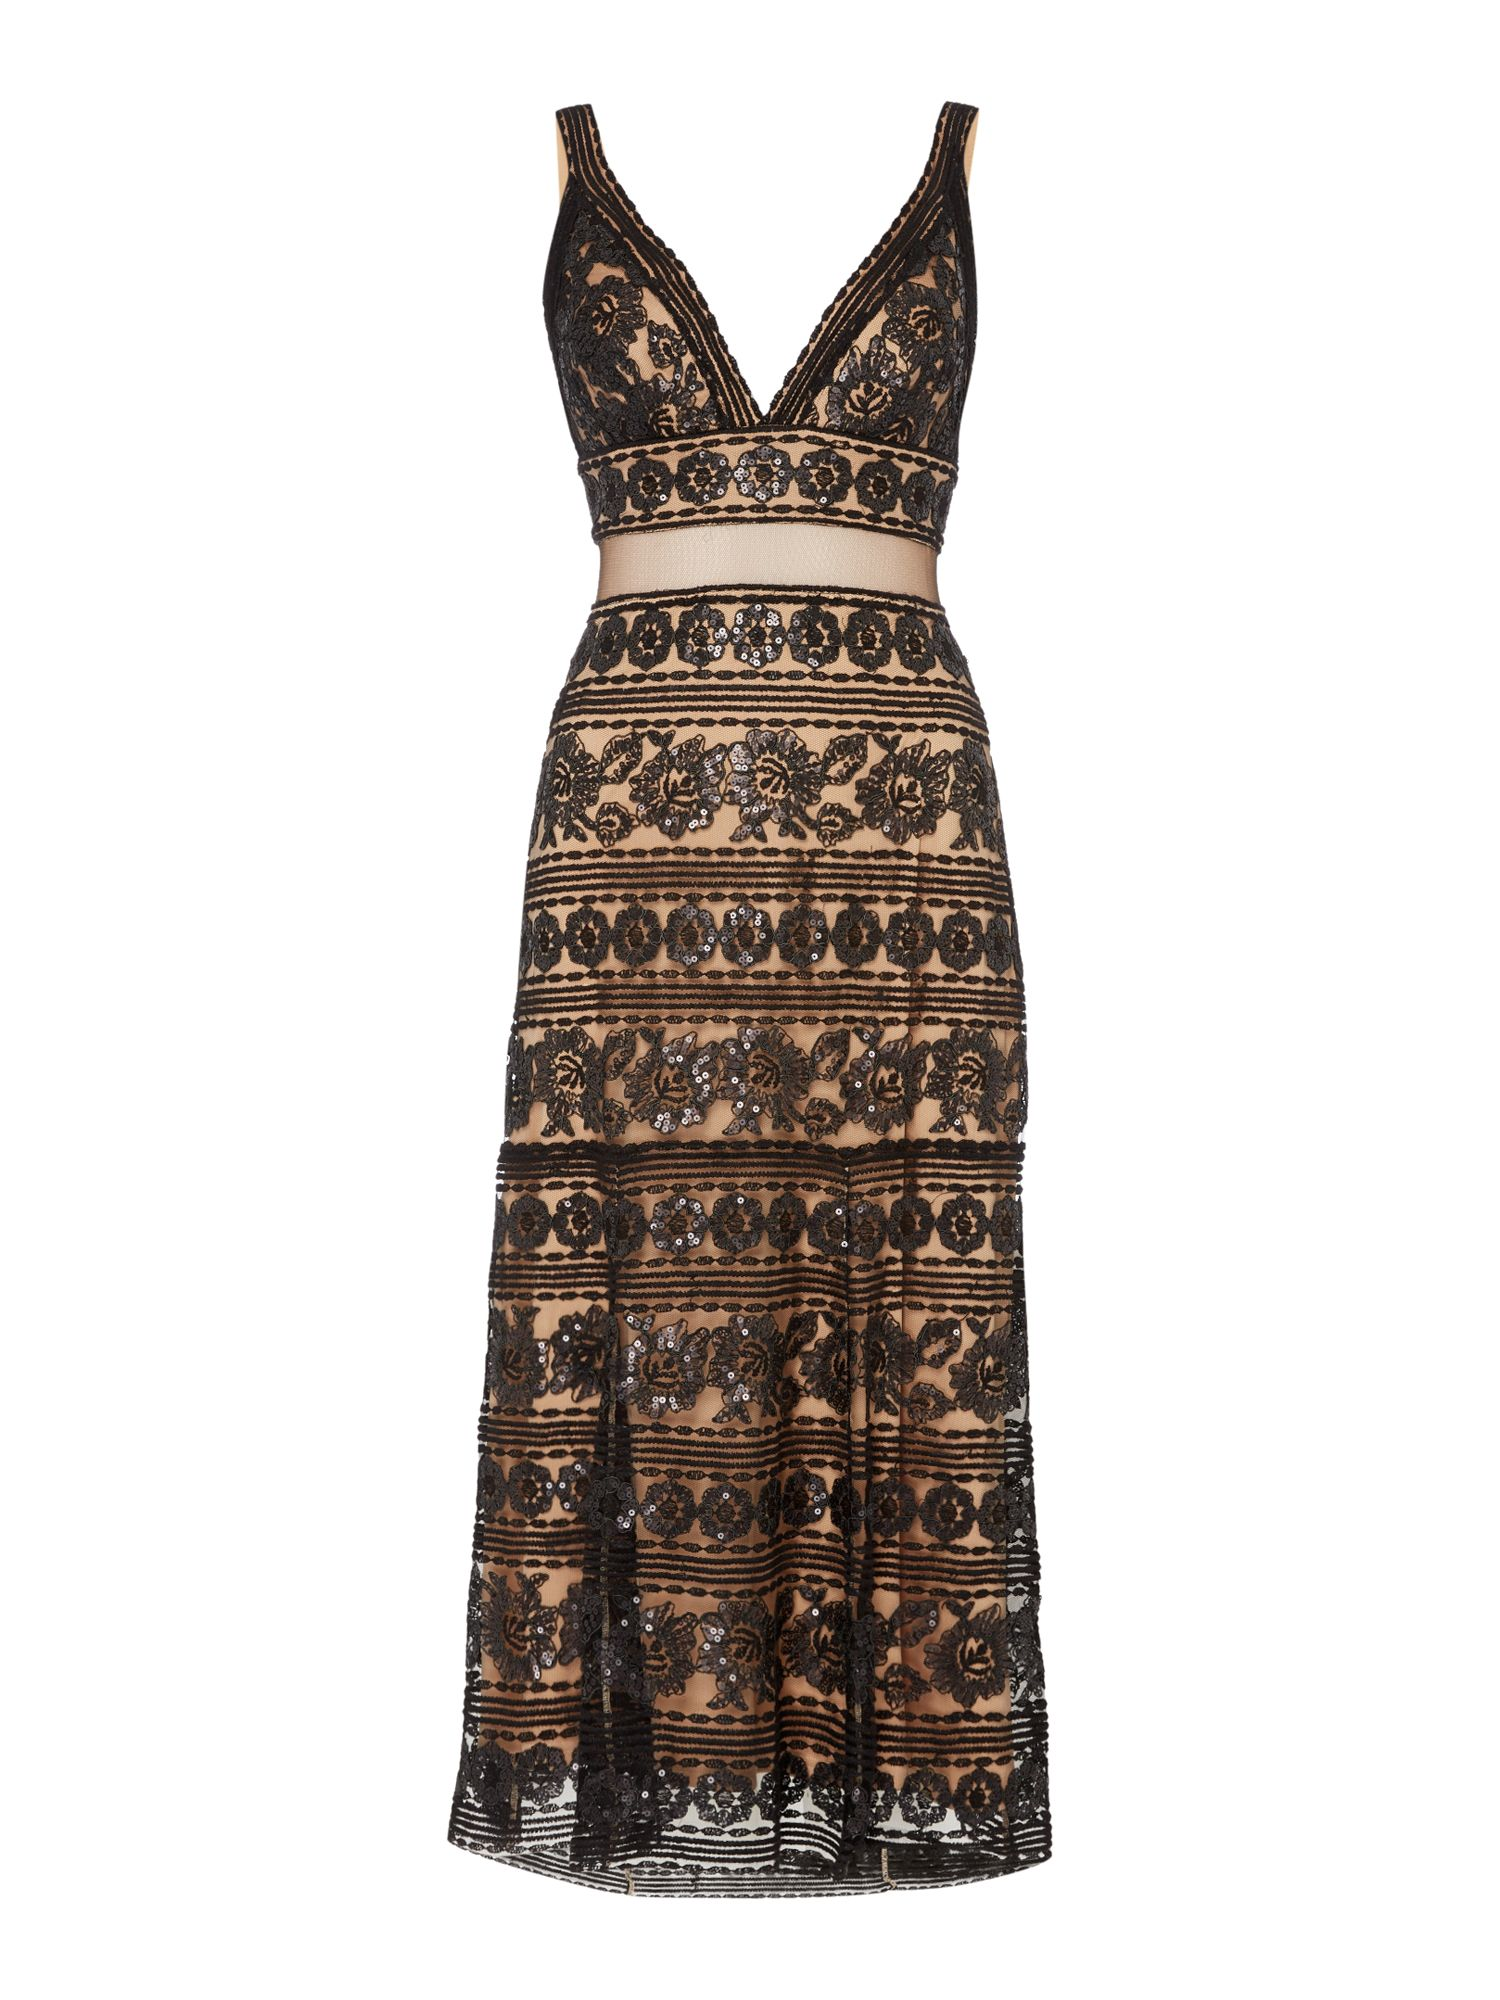 Tadashi Shoji Sleeveless bonded lace and beaded dress, Black